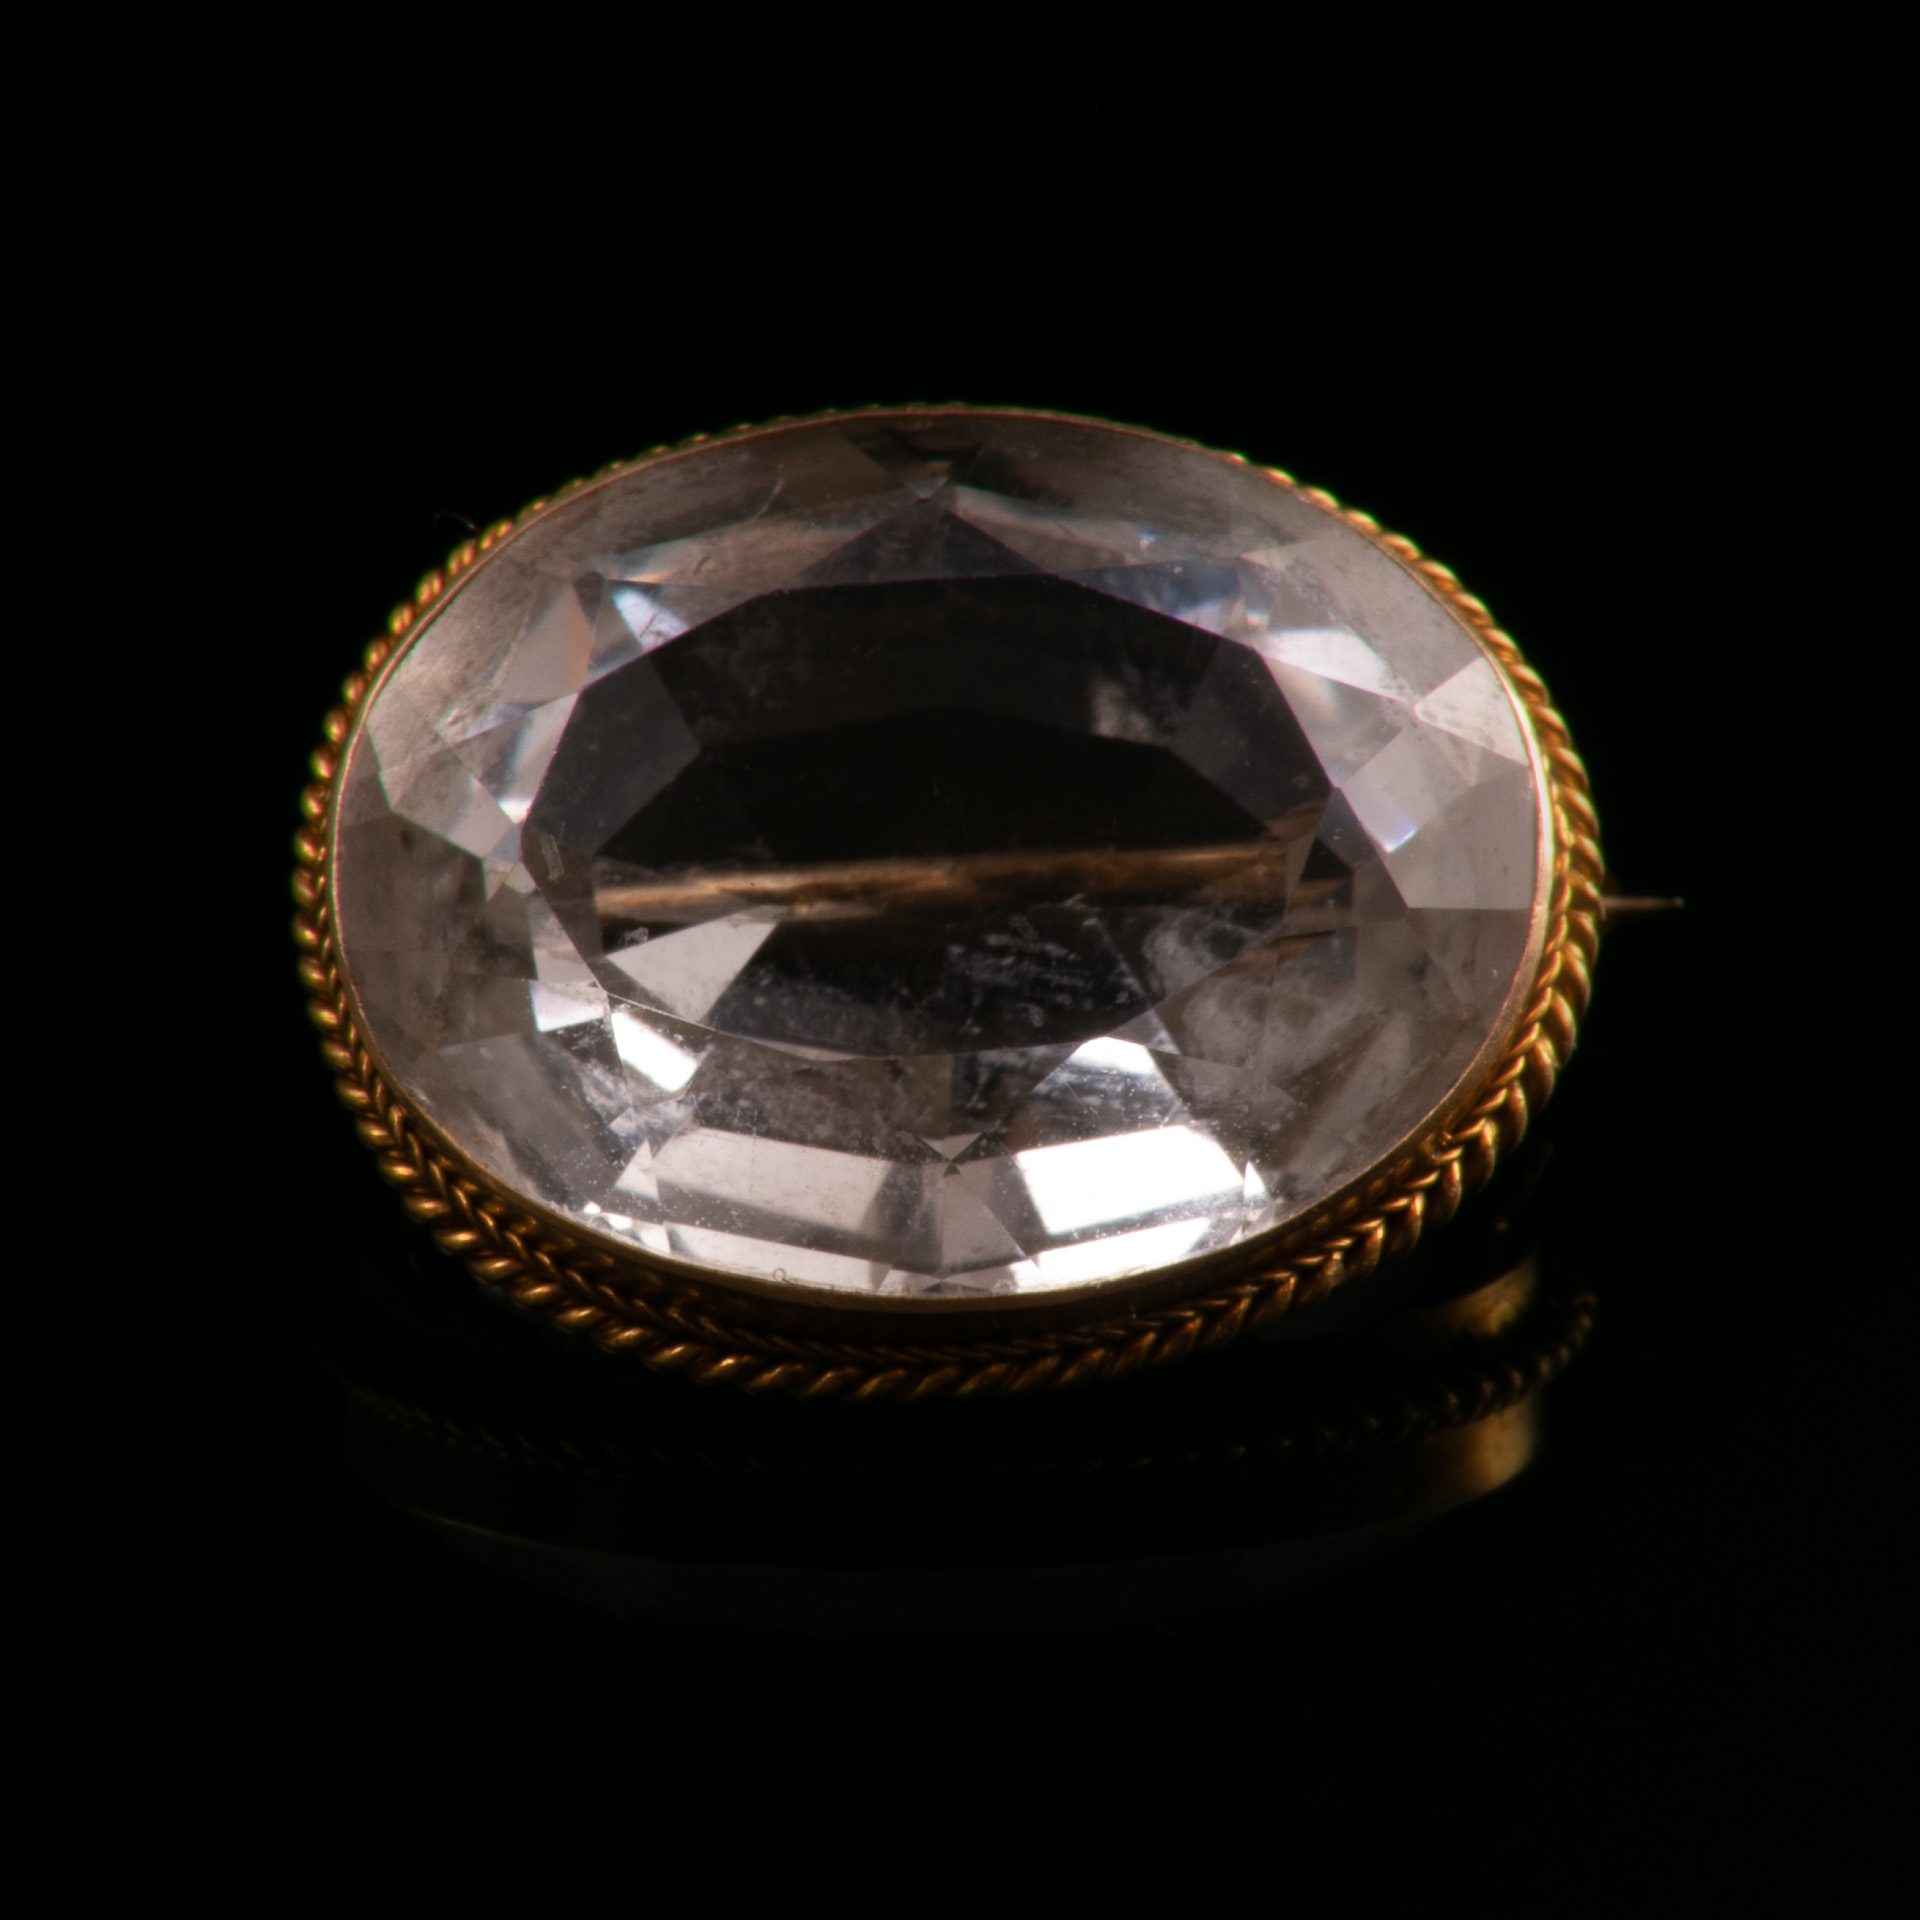 18ct Gold Victorian Faceted Rock Crystal Brooch